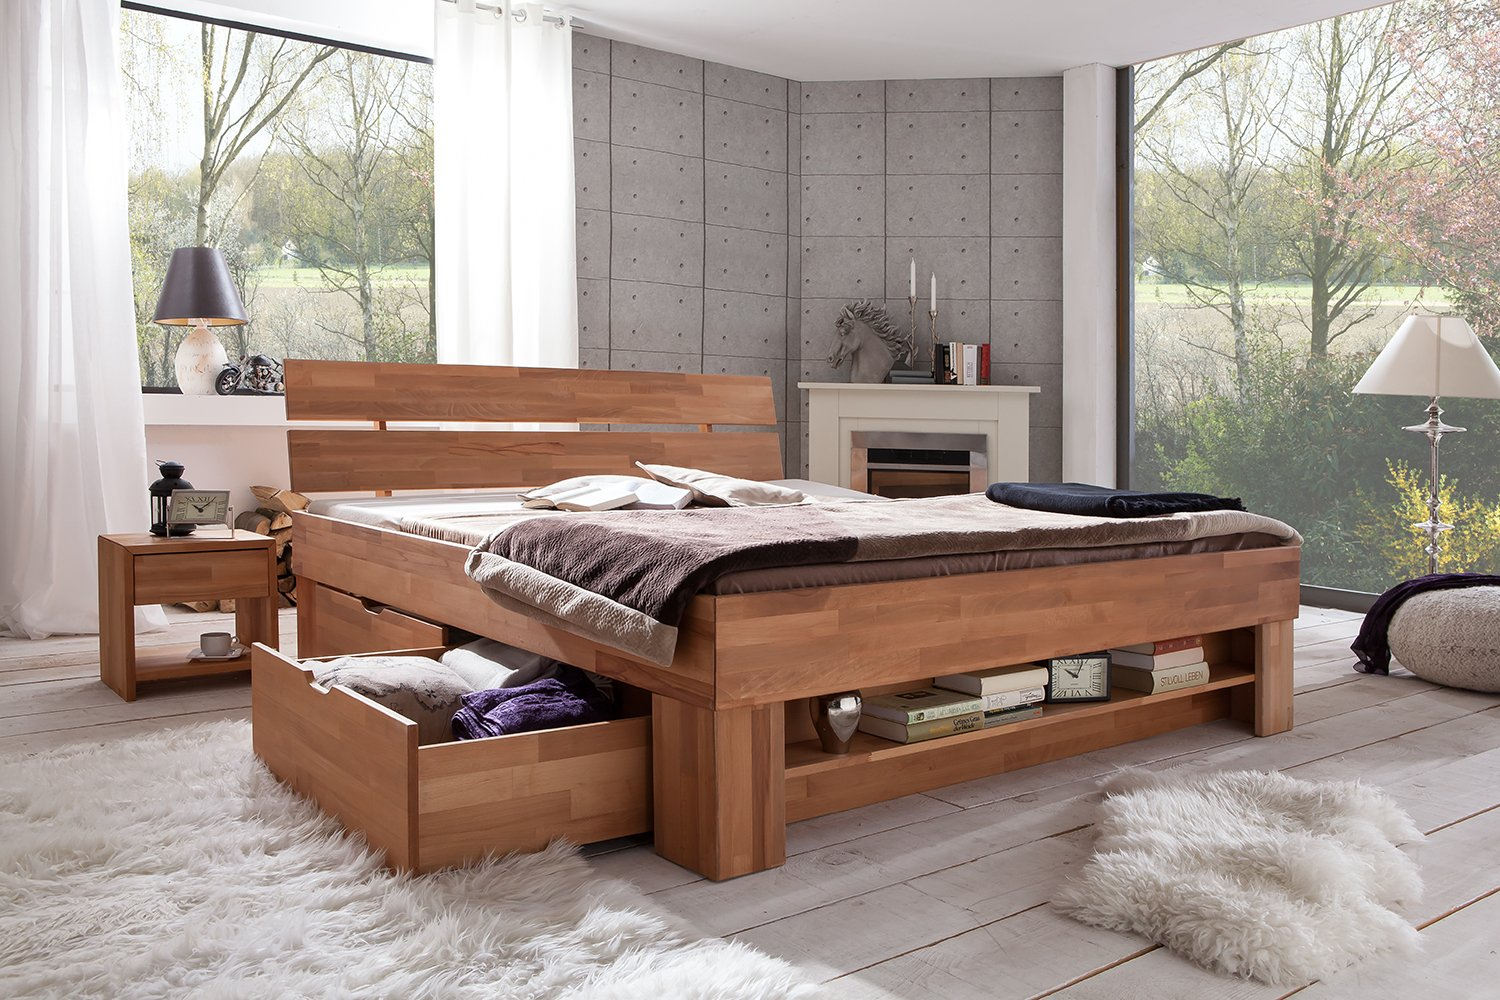 linea natura schlafzimmer ideen schlafzimmer gem tlich angebote komplett g zze bettw sche relax. Black Bedroom Furniture Sets. Home Design Ideas